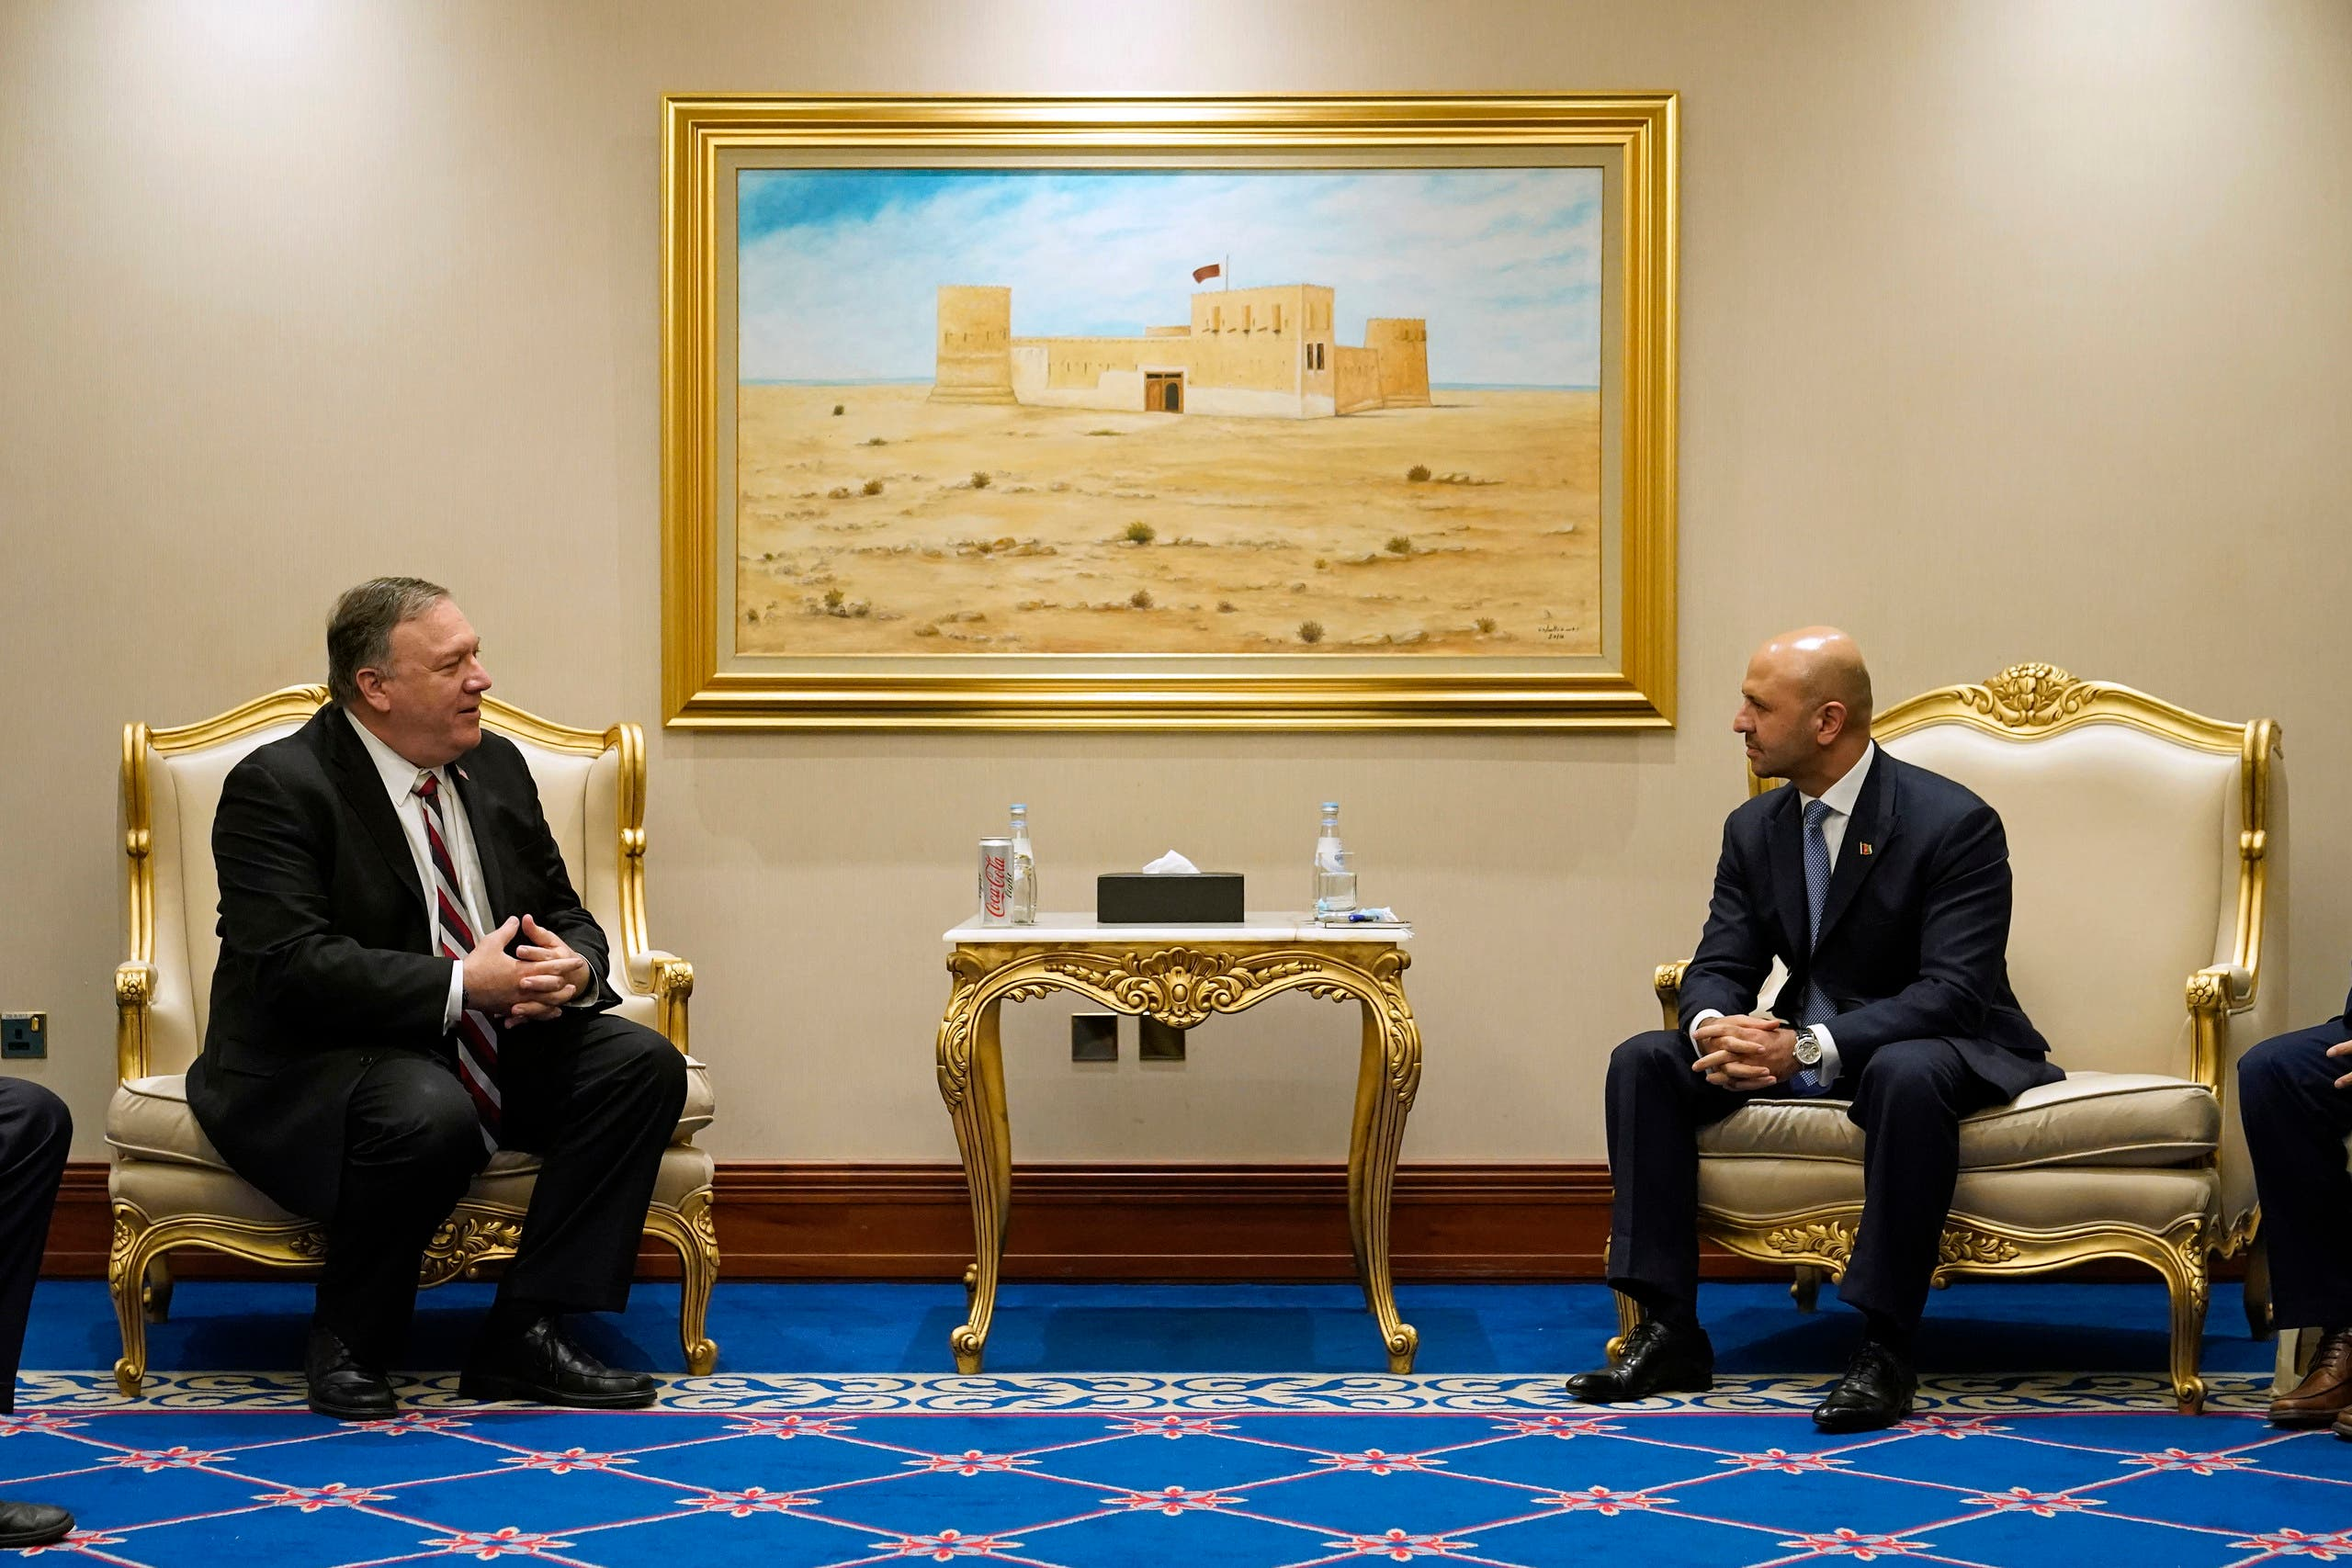 In this November 21, 2020 file photo, Secretary of State Mike Pompeo, left, meets with Afghanistan's State Minister for Peace Sayed Sadat Mansoor Naderi and the Islamic Republic of Afghanistan's peace negotiation team amid talks between the Afghan government and the Taliban, in Doha, Qatar. A Democratic senator called on the State Department to prioritize the return of Mark Frerichs. (AP)